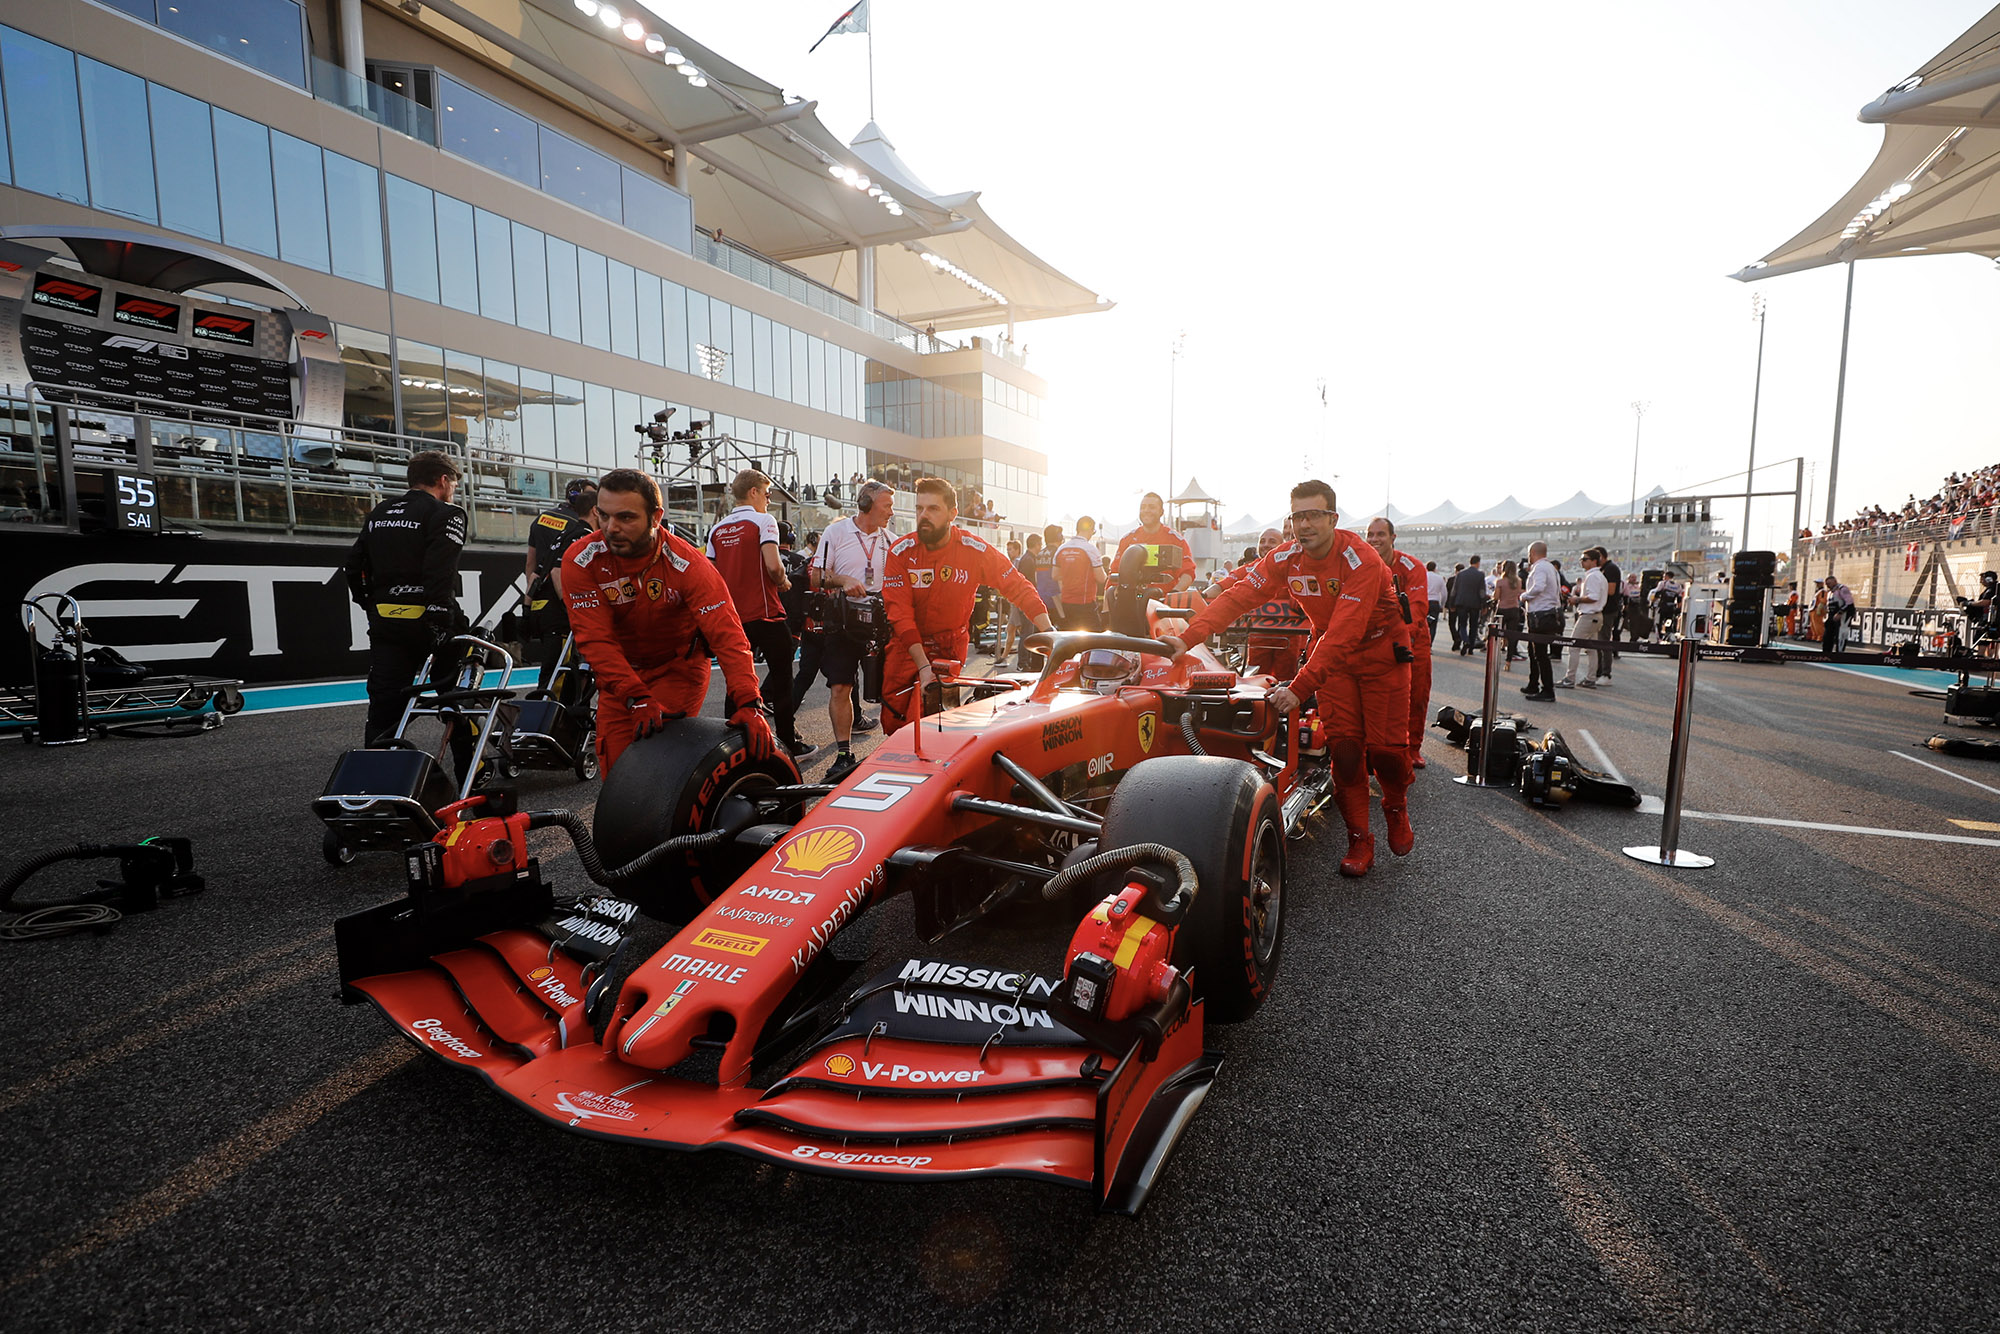 Charles Leclerc's car is pushed to the grid ahead of the 2019 Abu Dhabi Grand Prix